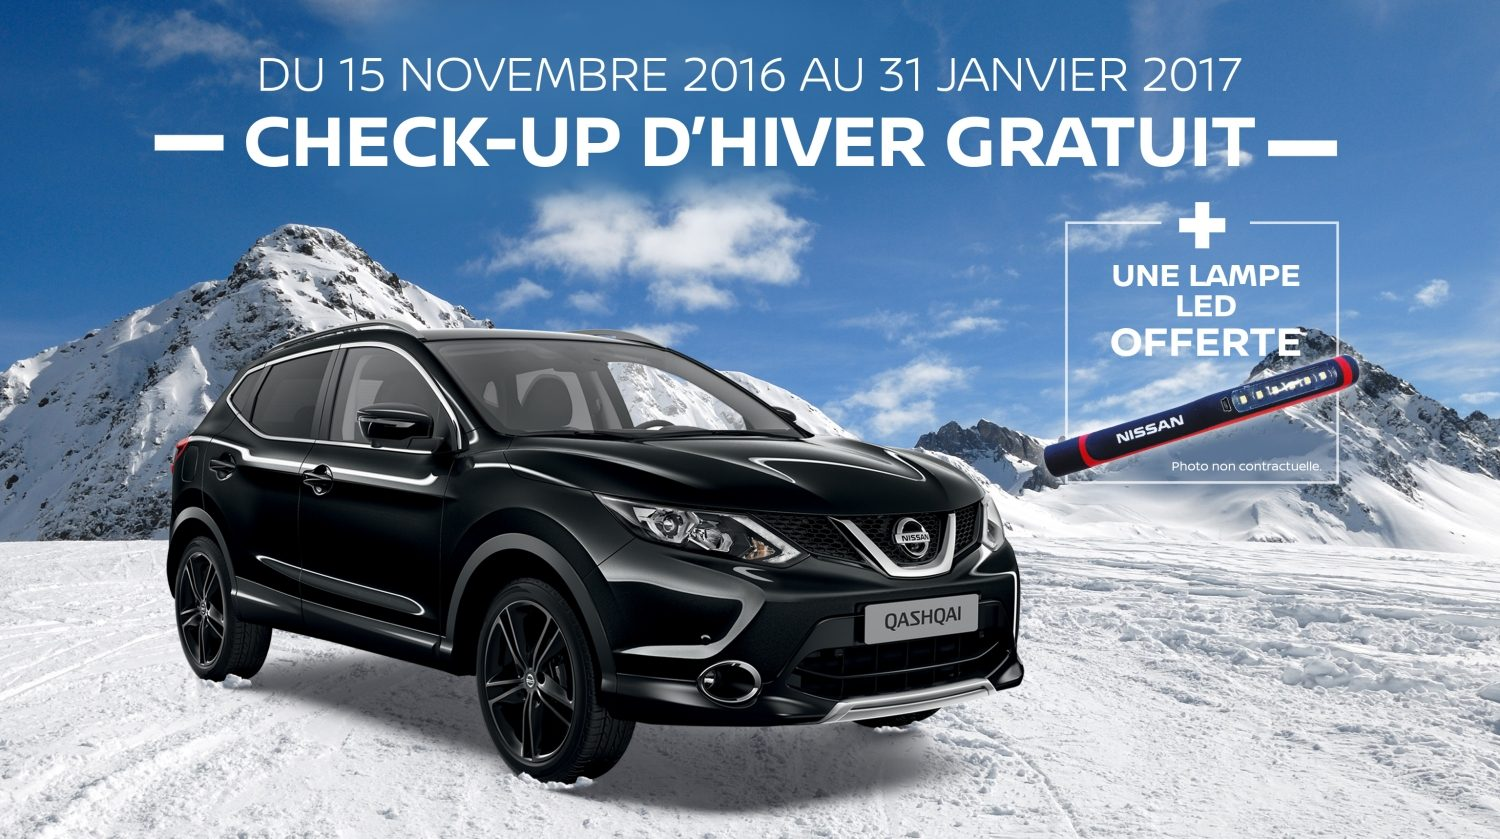 Nissan check-up d'hiver